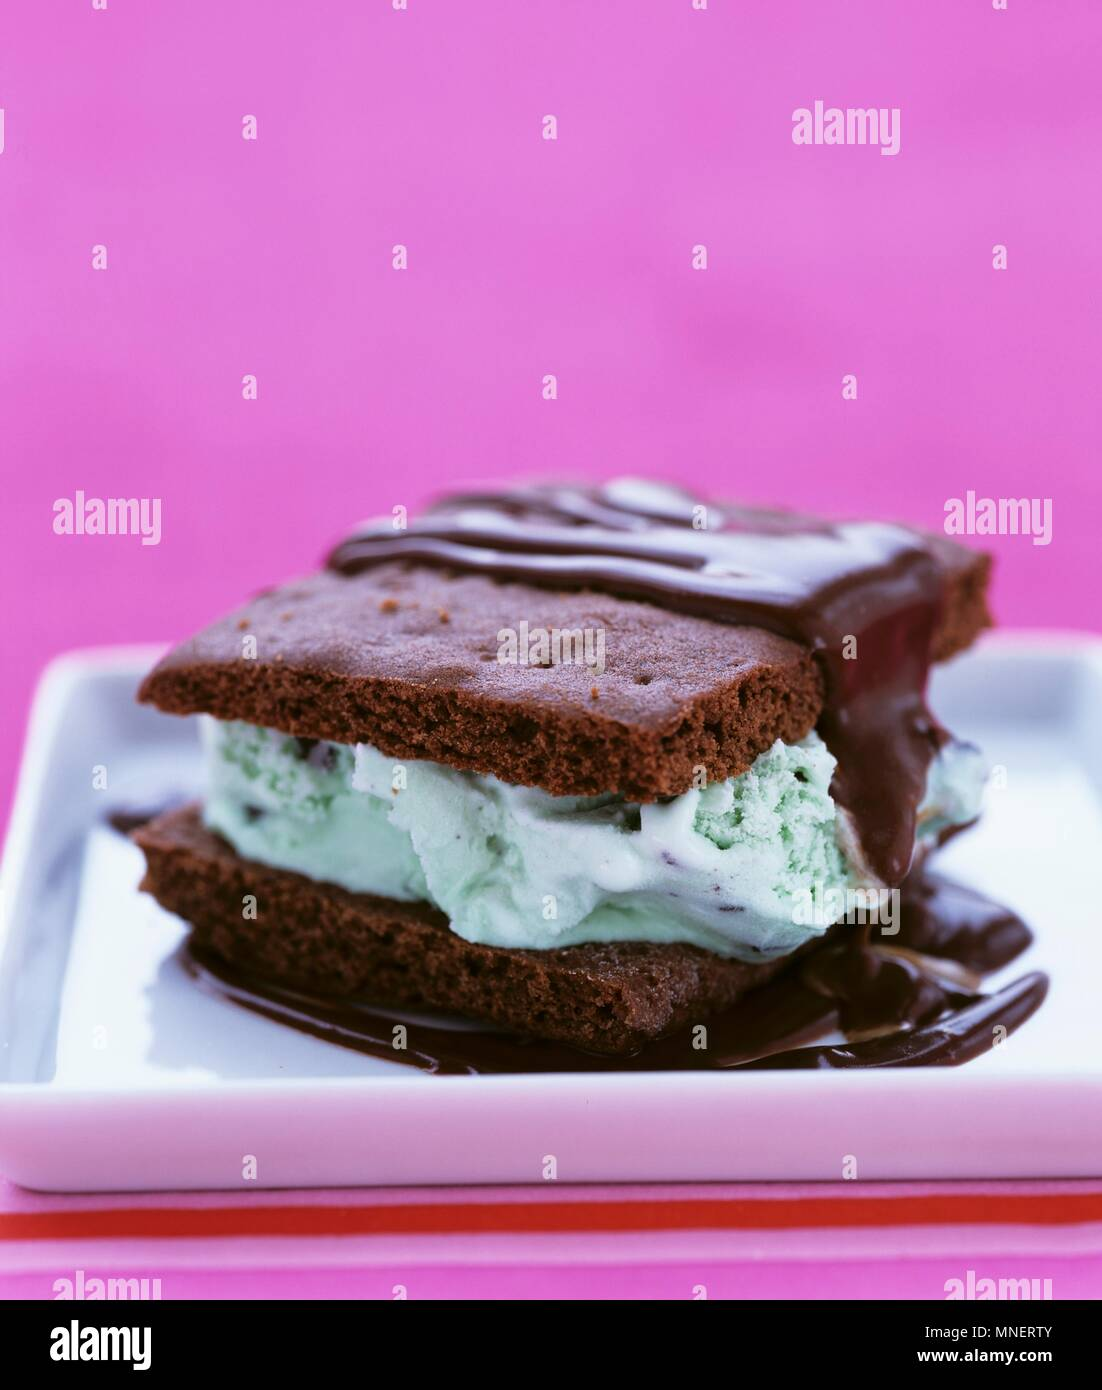 Ice cream sandwich (chocolate biscuits with mint ice cream) - Stock Image